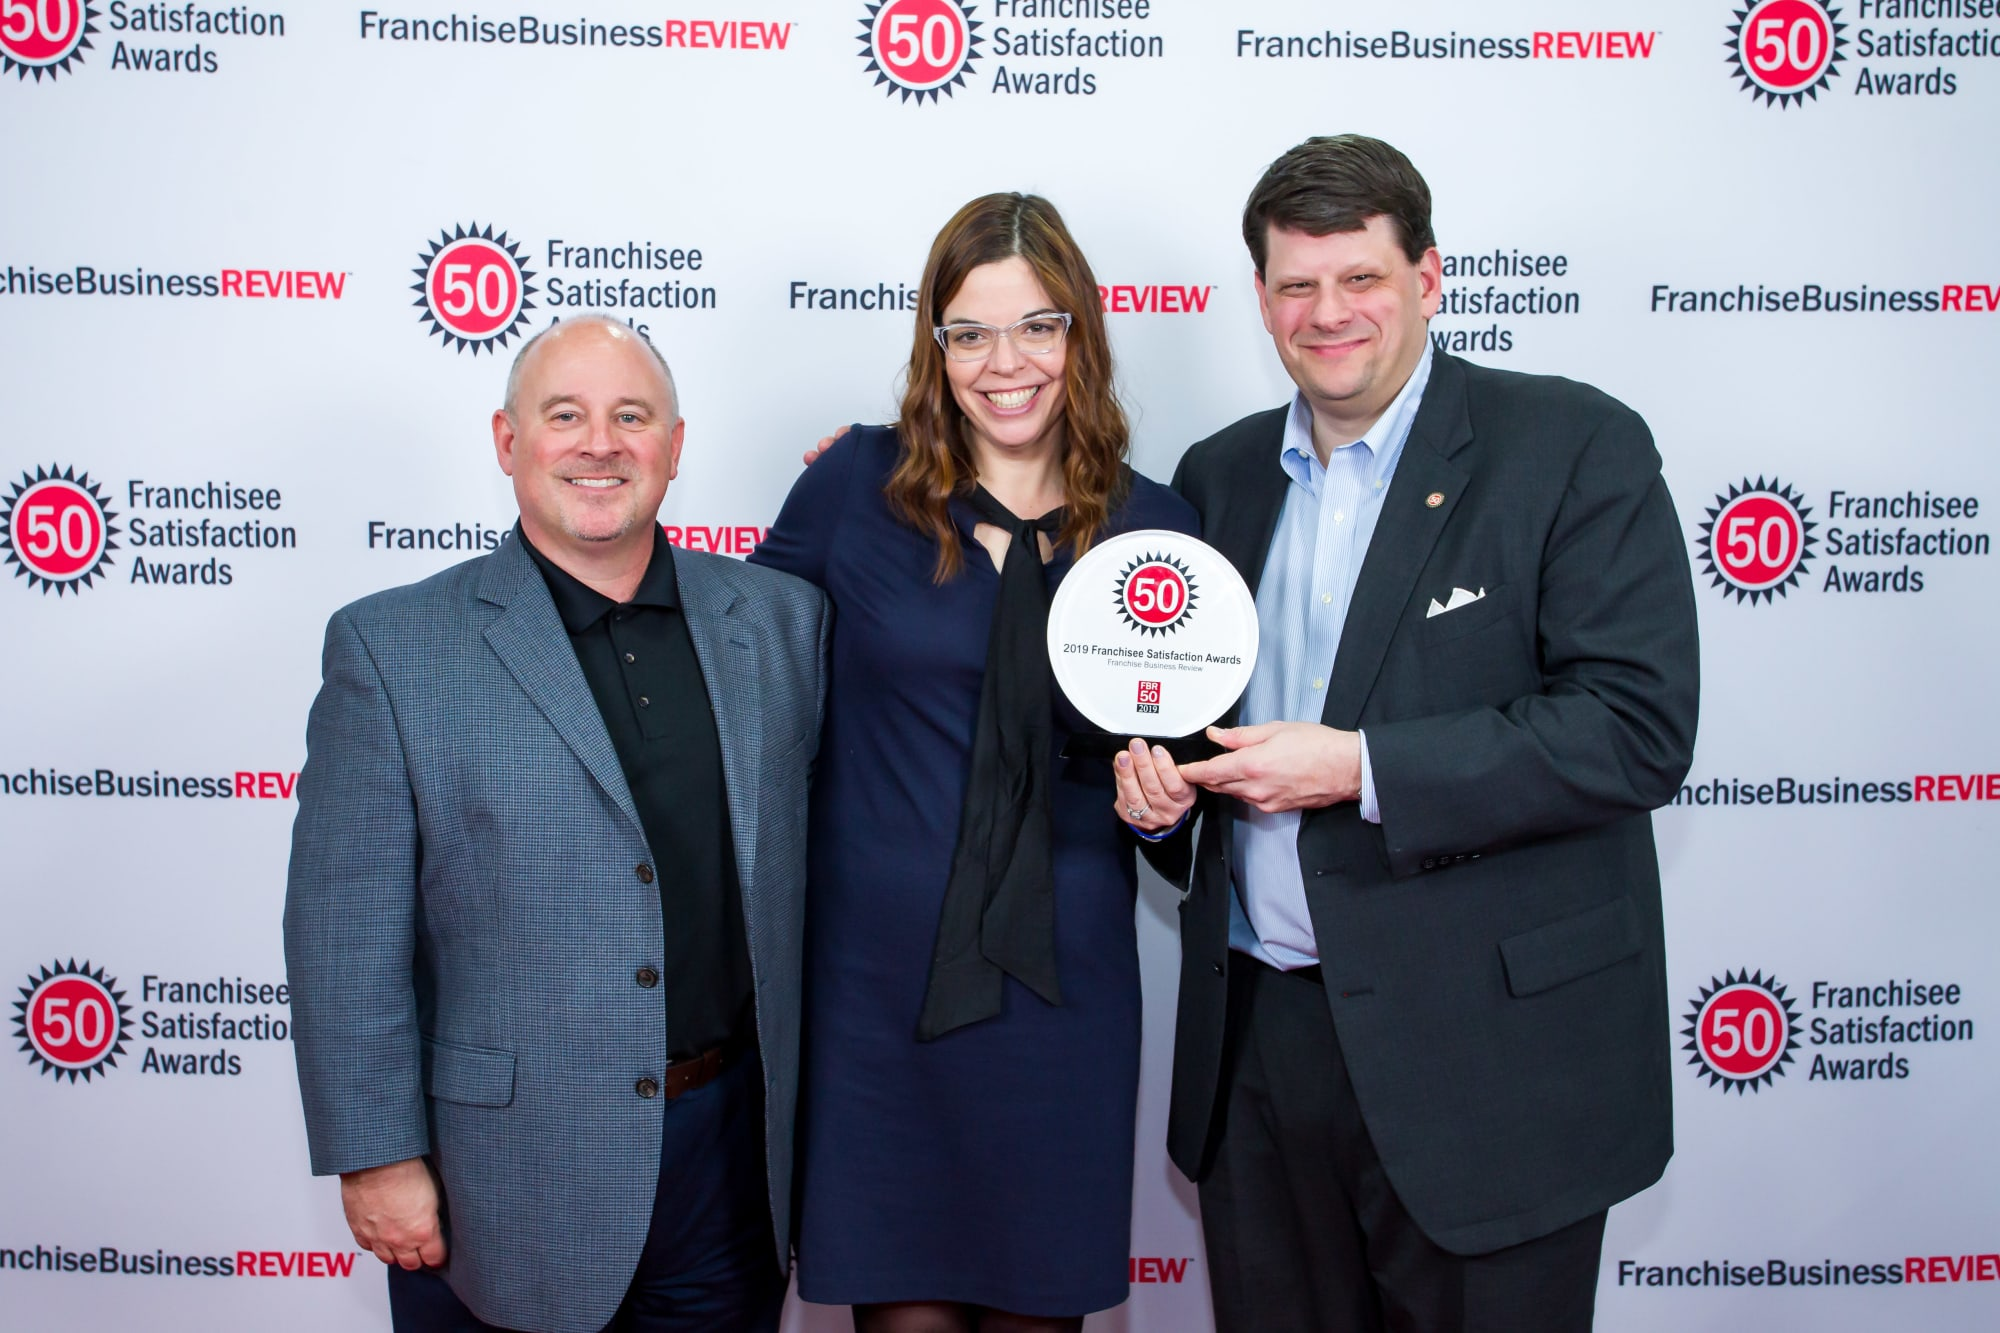 Tropical Smoothie Cafe leadership accepting FBR Franchisee Satisfaction Award